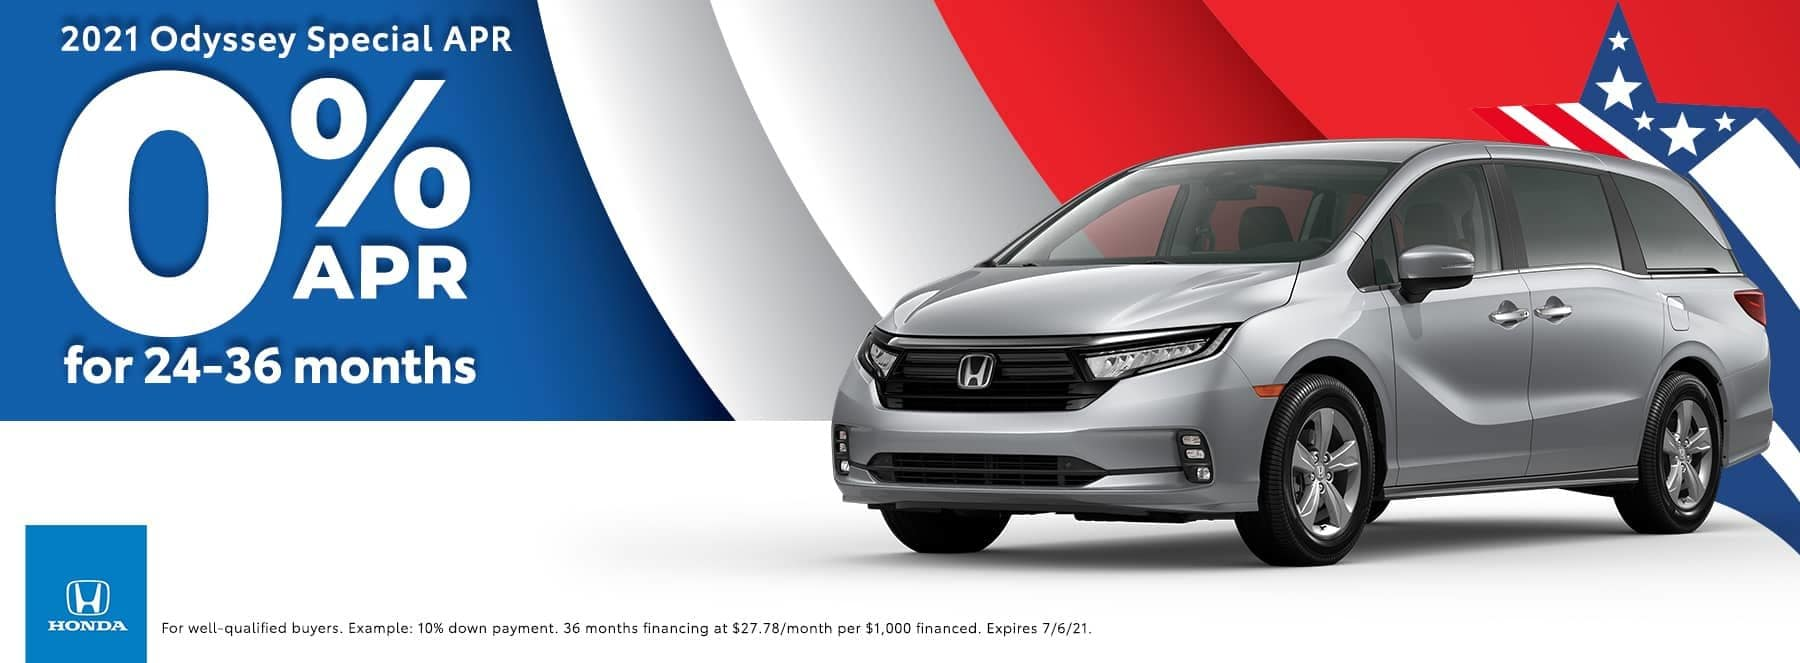 Honda of Newnan - 2021 Odyssey Special - 0% APR for 24-36 months